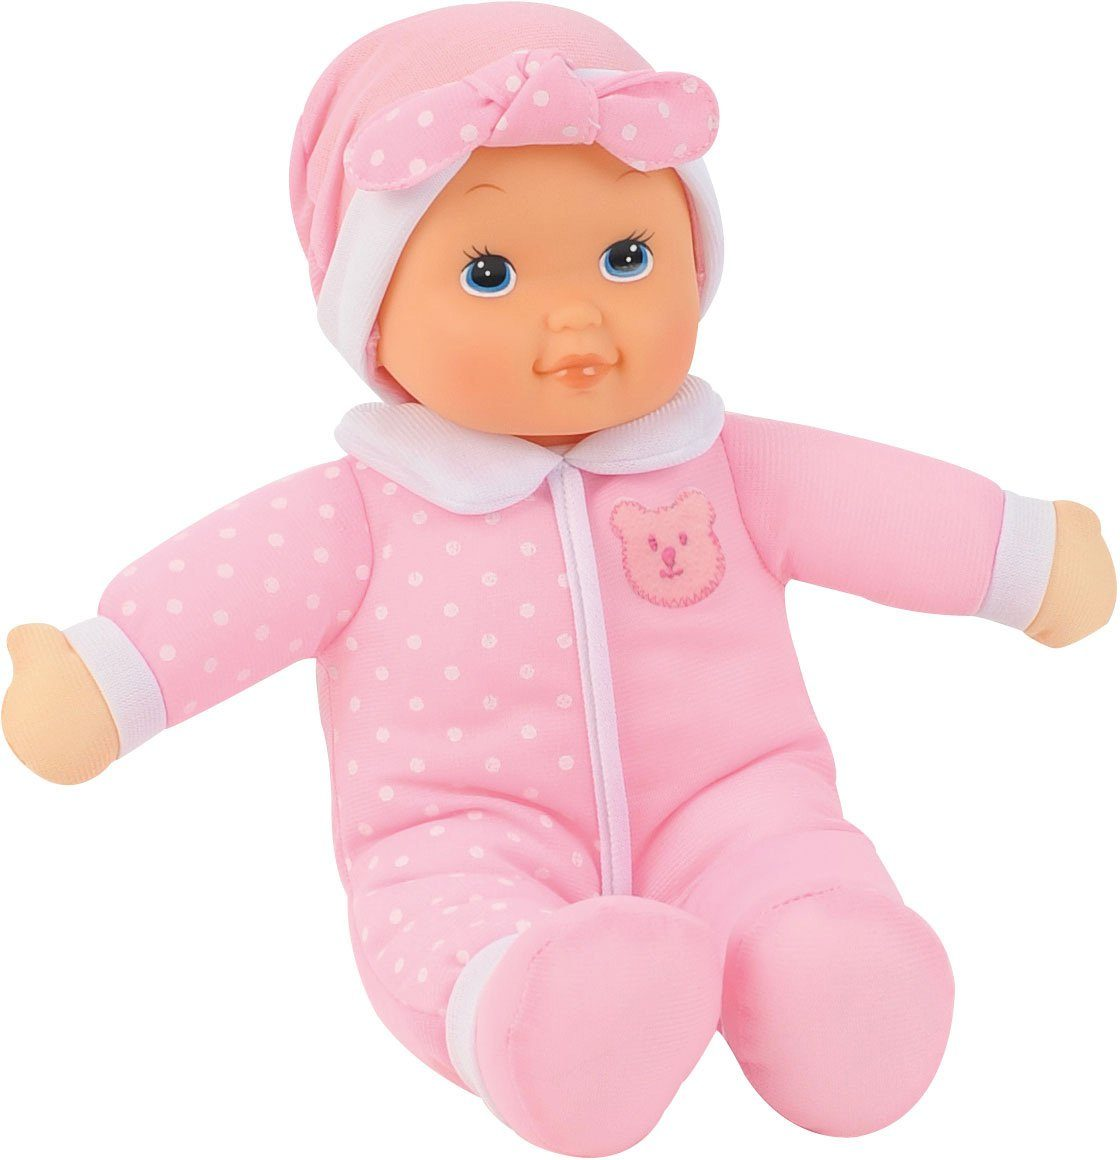 Dimian Babypuppe mit Soundfunktion, »My First Bambolina Doll With Kissing Sounds«